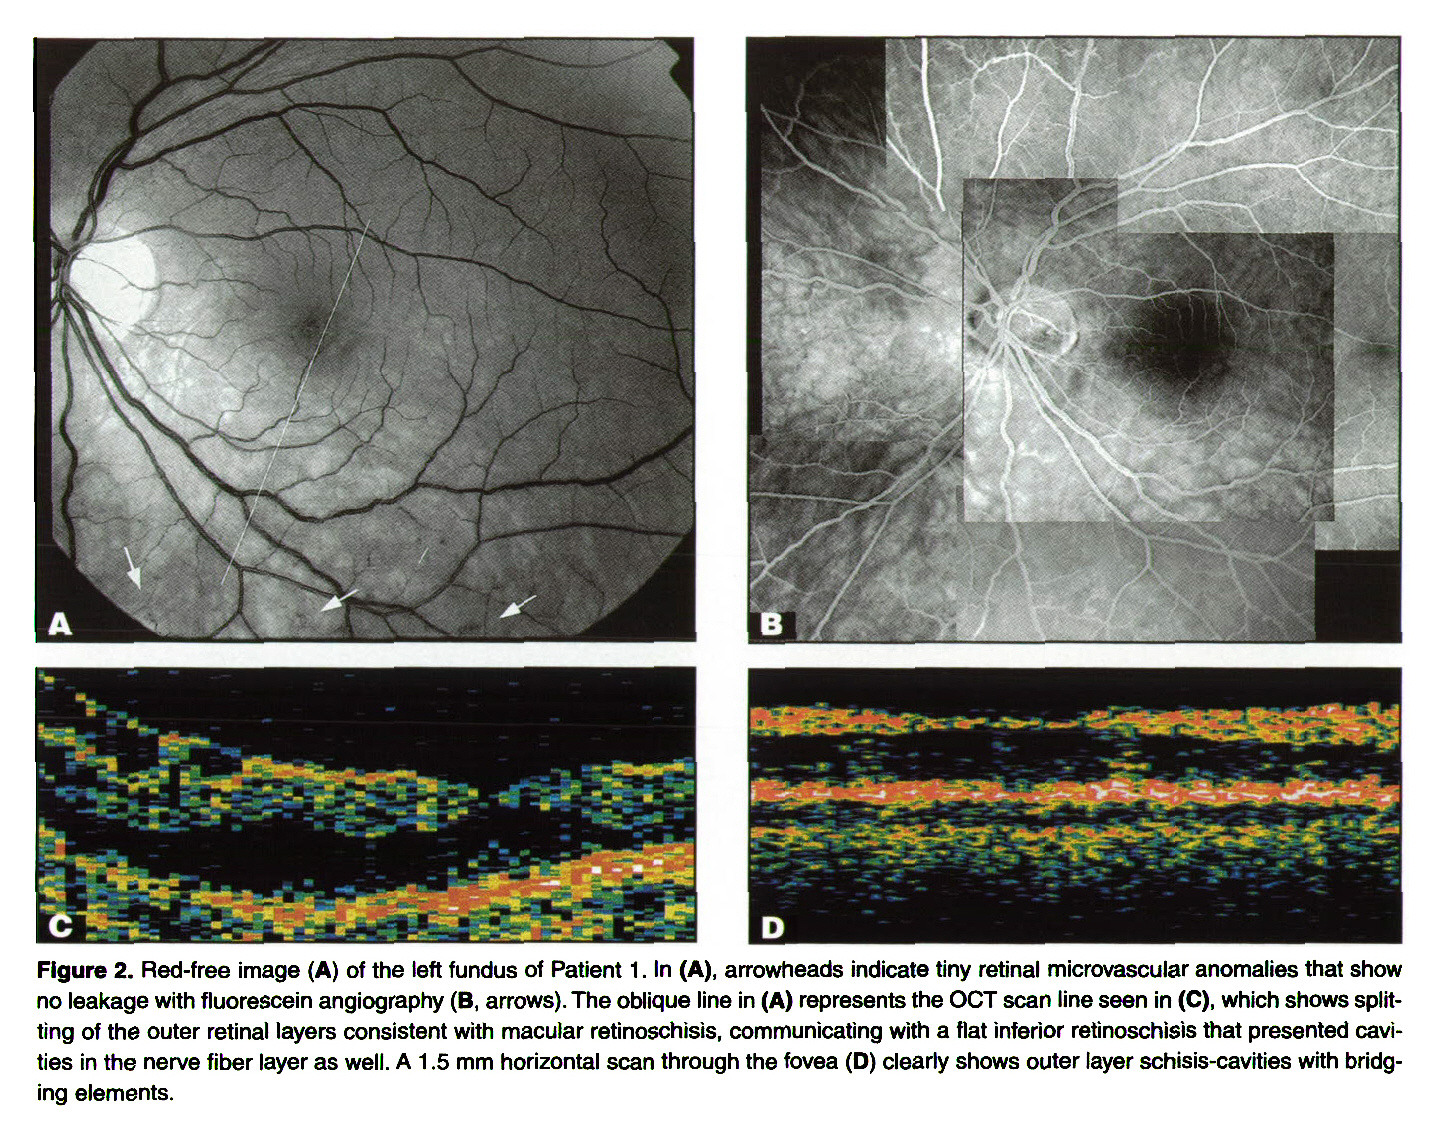 Figure 2. Red-free image (A) of the left fundus of Patient 1 . In (A), arrowheads indicate tiny retinal microvascular anomalies that show no leakage with fluorescein angiography (B, arrows). The oblique line in (A) represents the OCT scan line seen in (C), which shows splitting of the outer retinal layers consistent with macular retinoschisis, communicating with a flat inferior retinoschisis that presented cavities in the nerve fiber layer as well. A 1.5 mm horizontal scan through the fovea (D) clearly shows outer layer schisis-cavities with bridging elements.